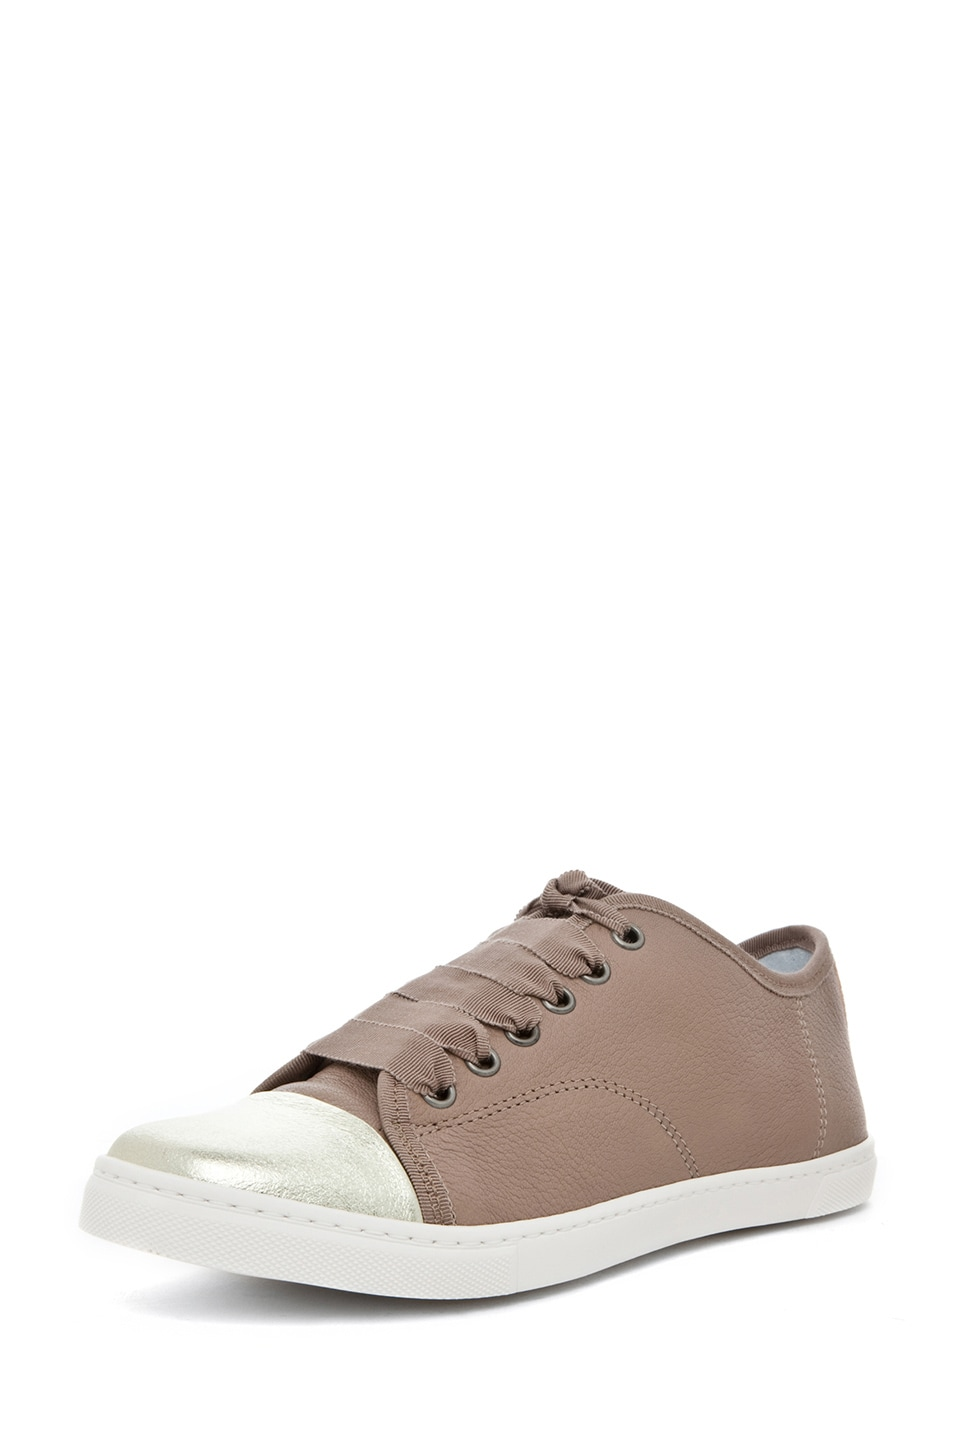 Image 2 of Lanvin Low Top Sneaker in Gold & Beige